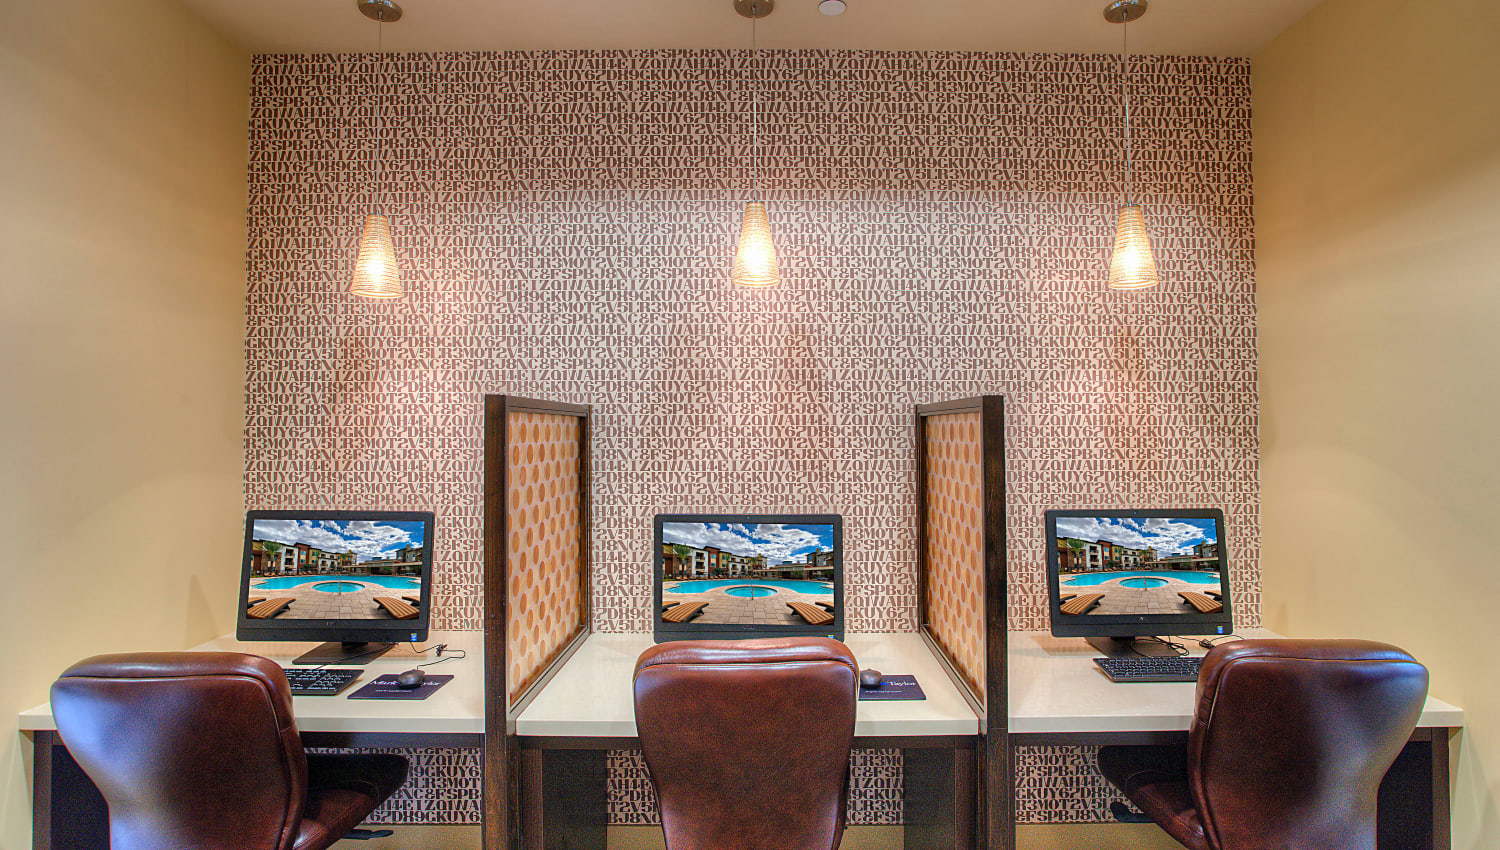 Computer workstations in the business center at Vistara at SanTan Village in Gilbert, Arizona